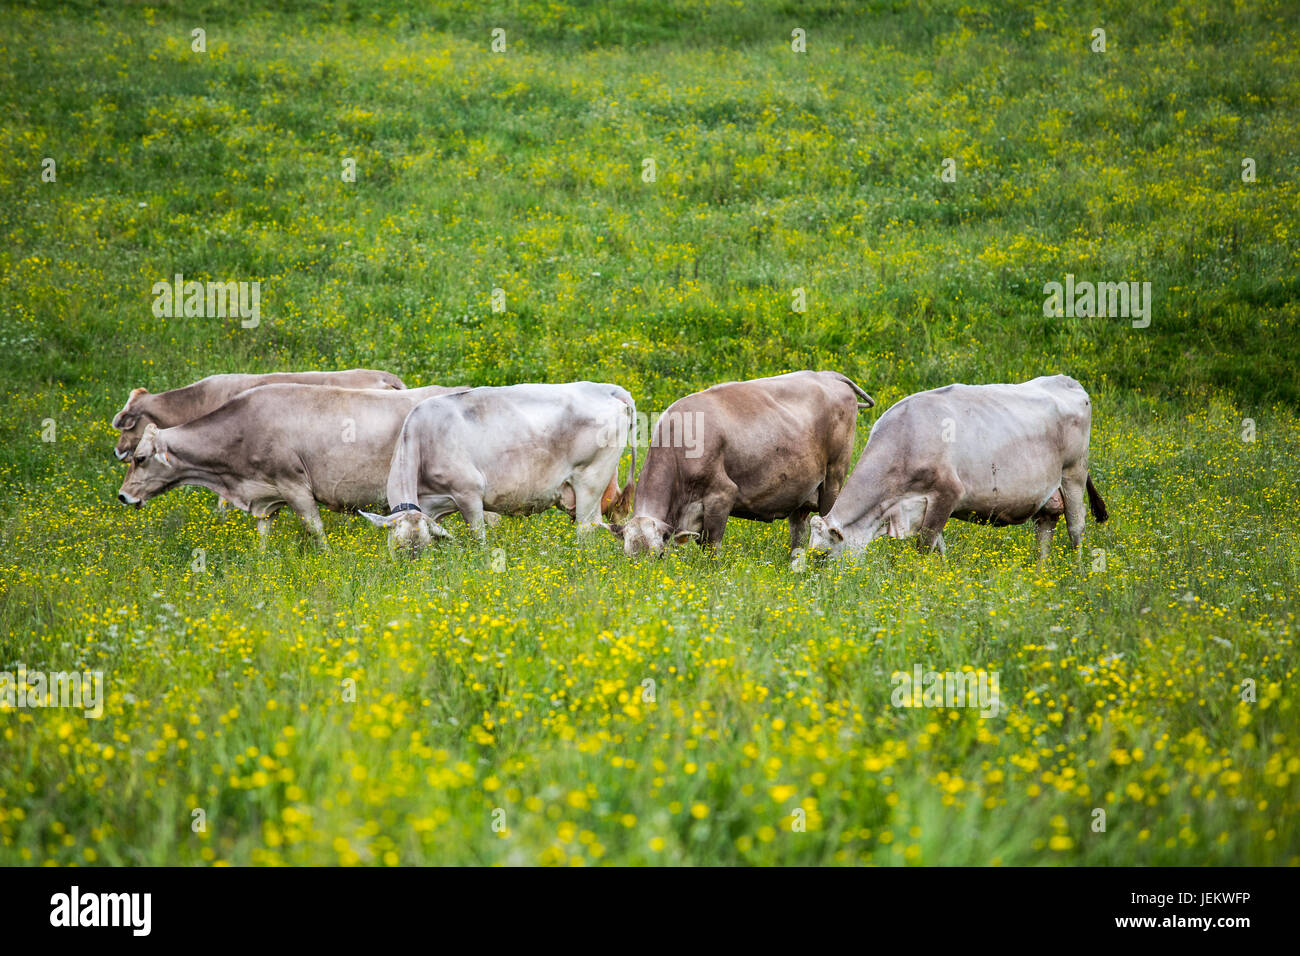 Group of cows (Swiss Braunvieh breed) grazing on a green meadow. - Stock Image